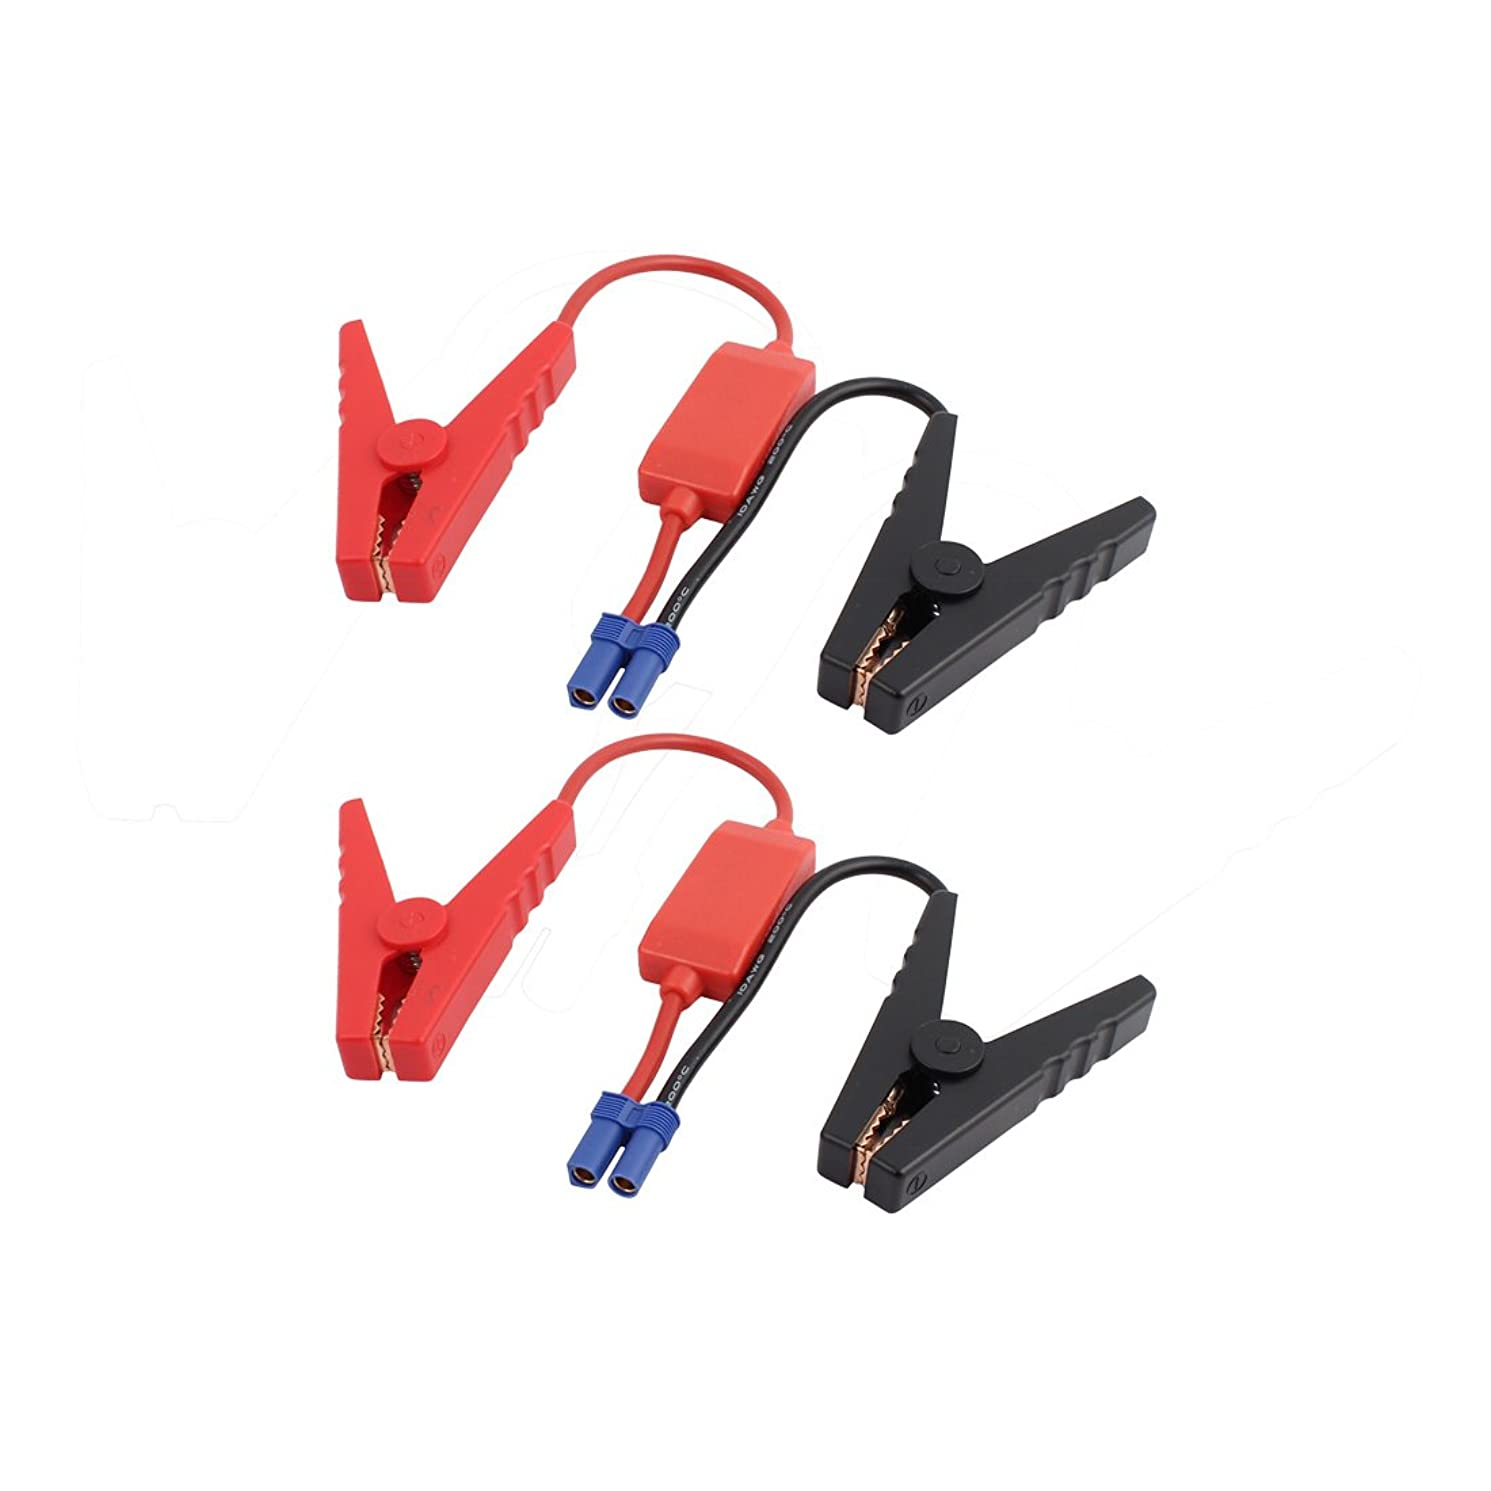 Aexit 2pcs EC5 Caulk Connector Emergency Jumper Cable Alligator Clamps Booster Battery Clips for Universal Car Rope Caulk Jump Starter